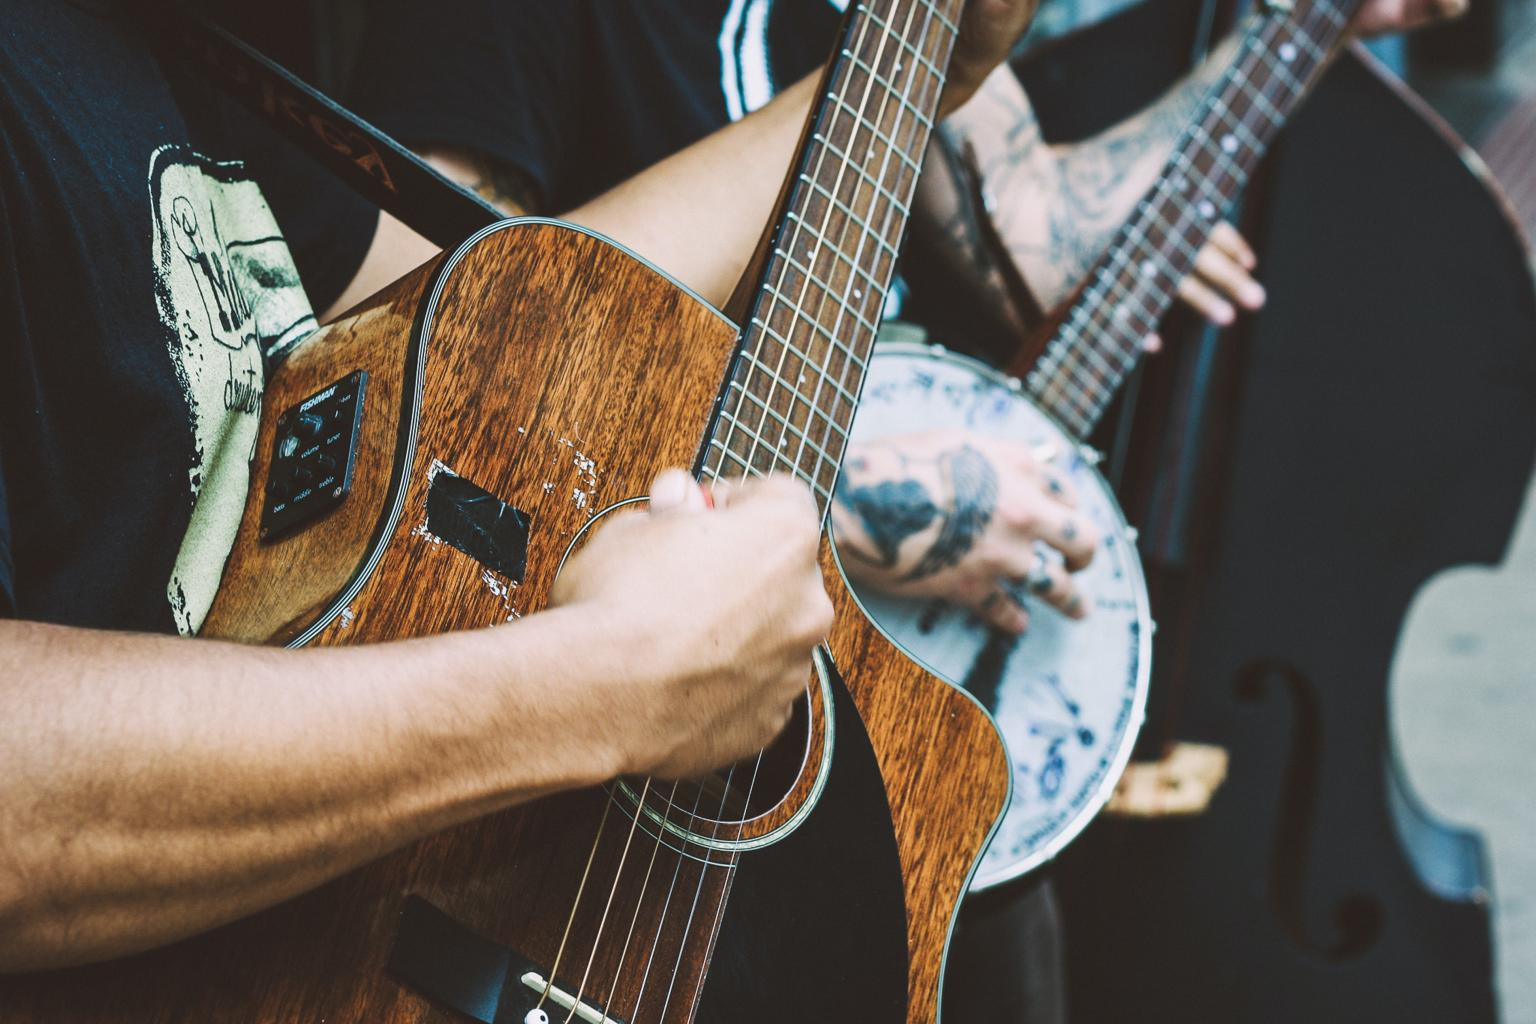 Close-up view of a guitar and banjo